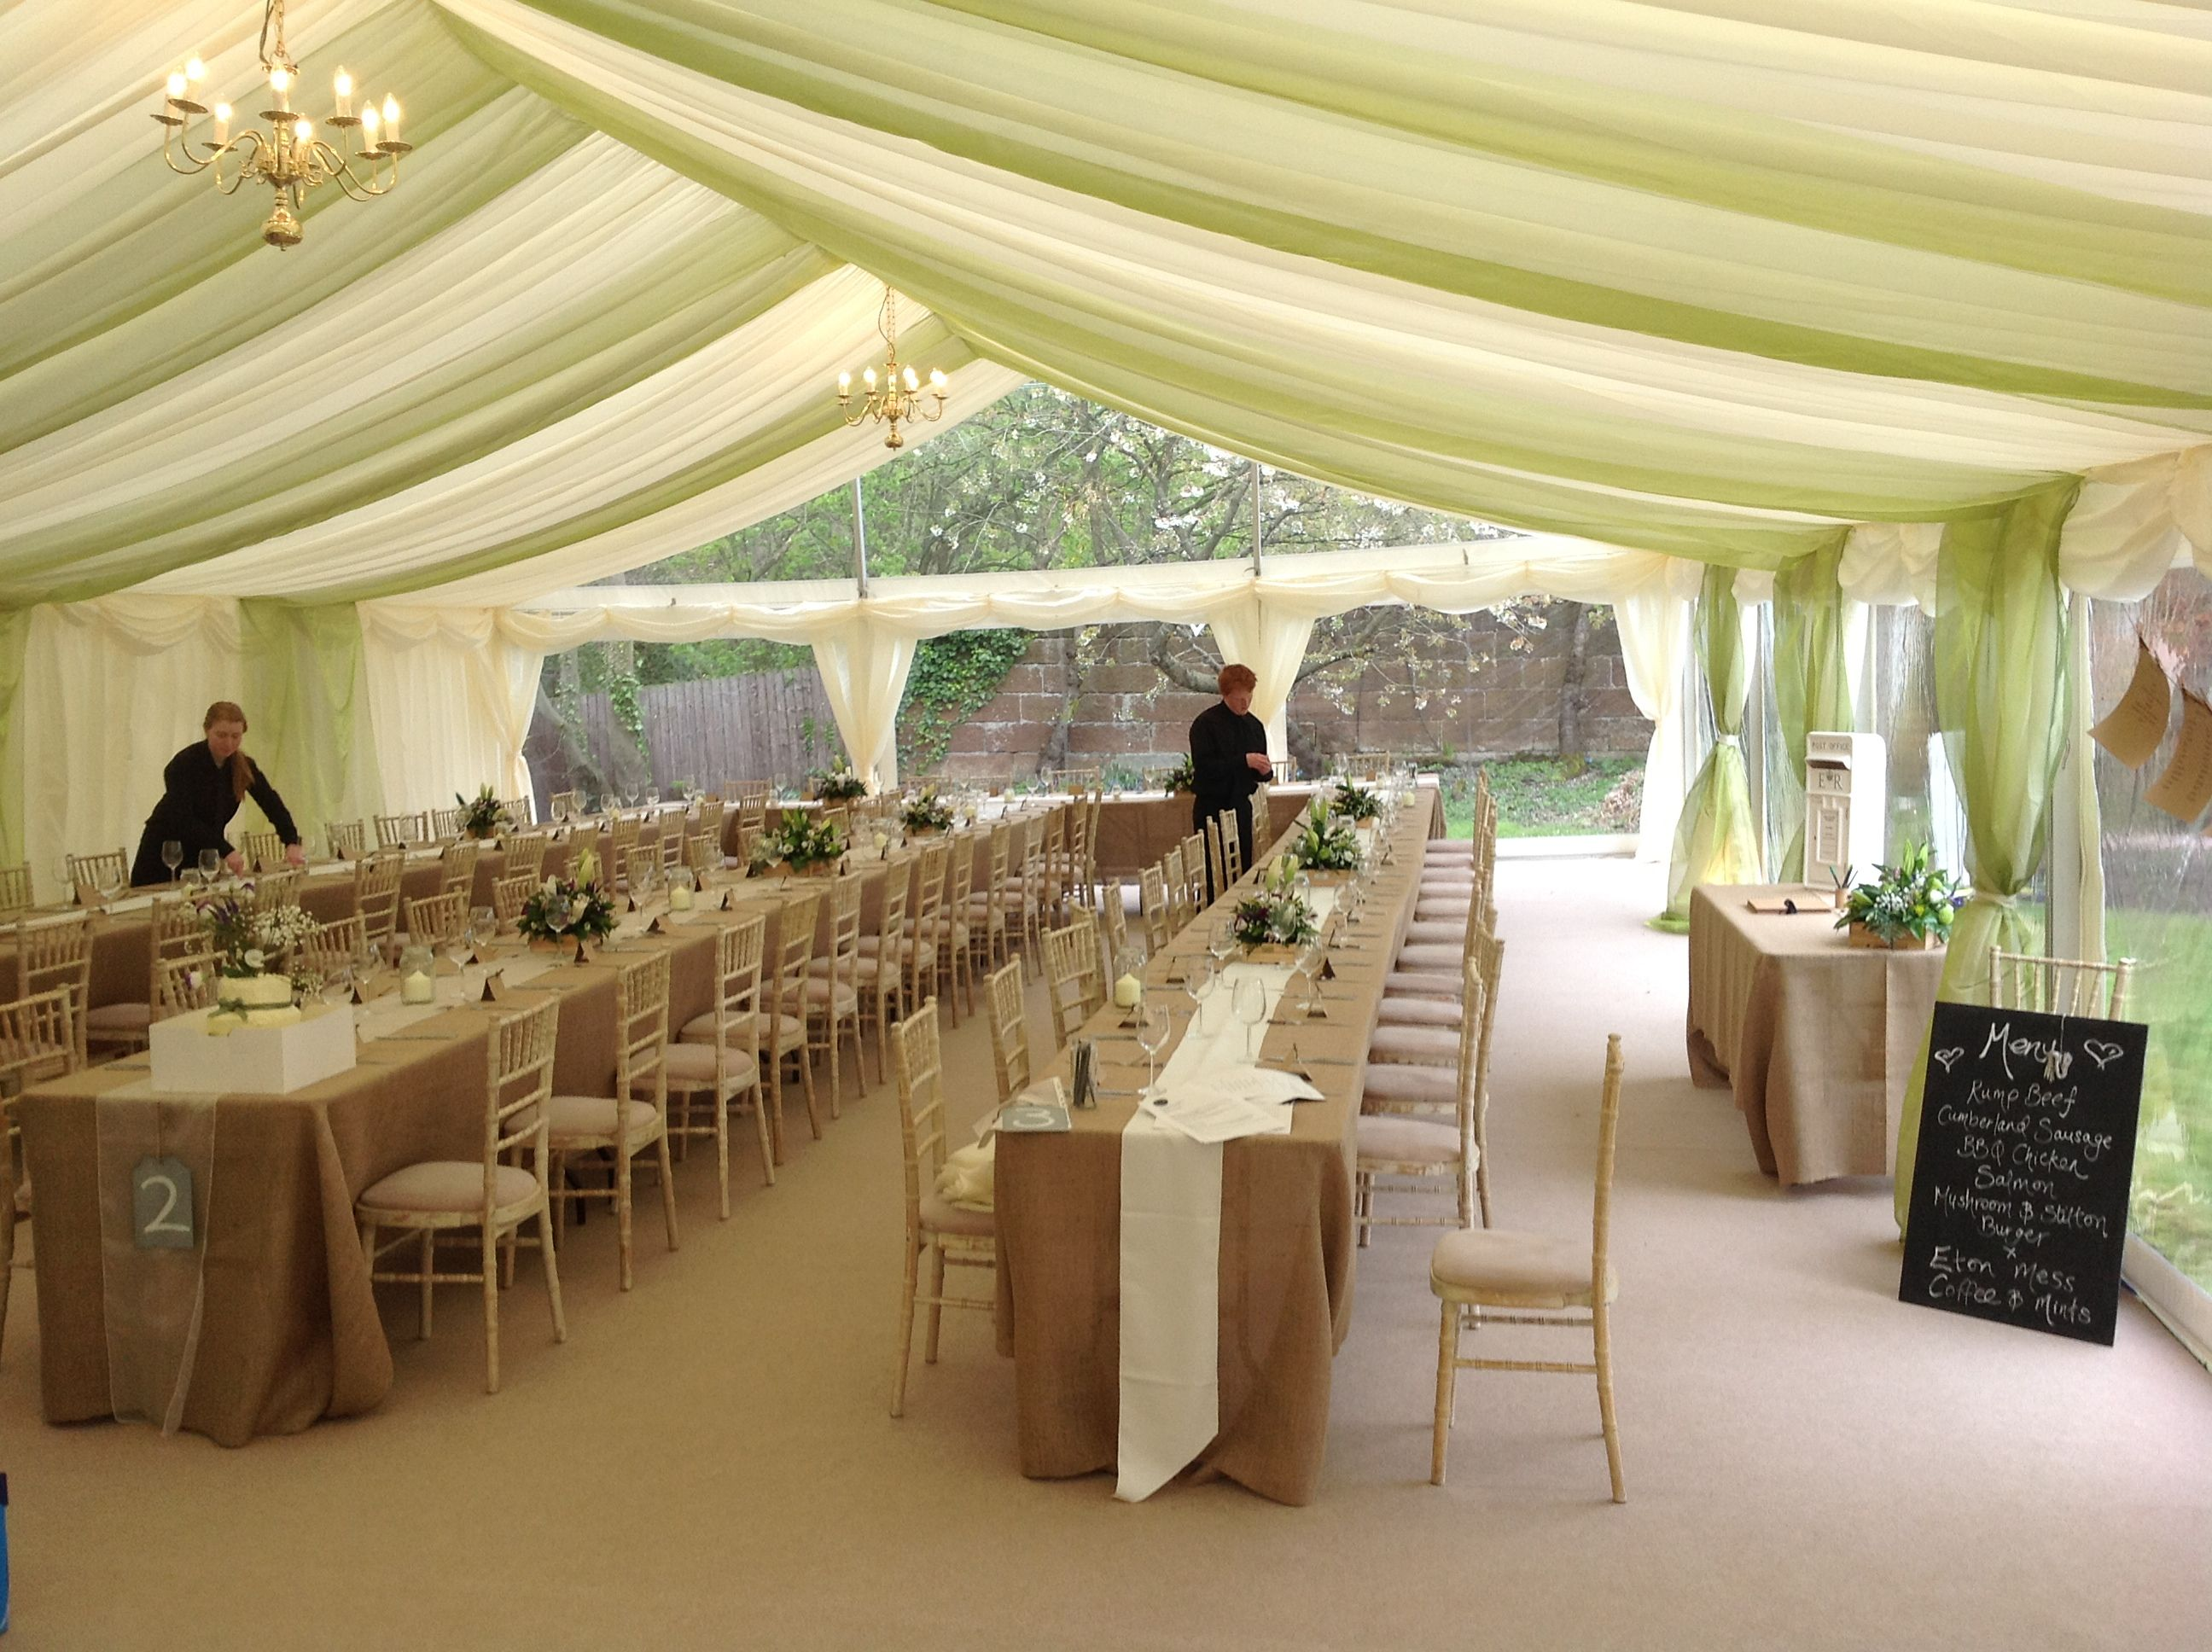 Wirral Wedding With Green Roof Overlays Wedding Venue Pinterest